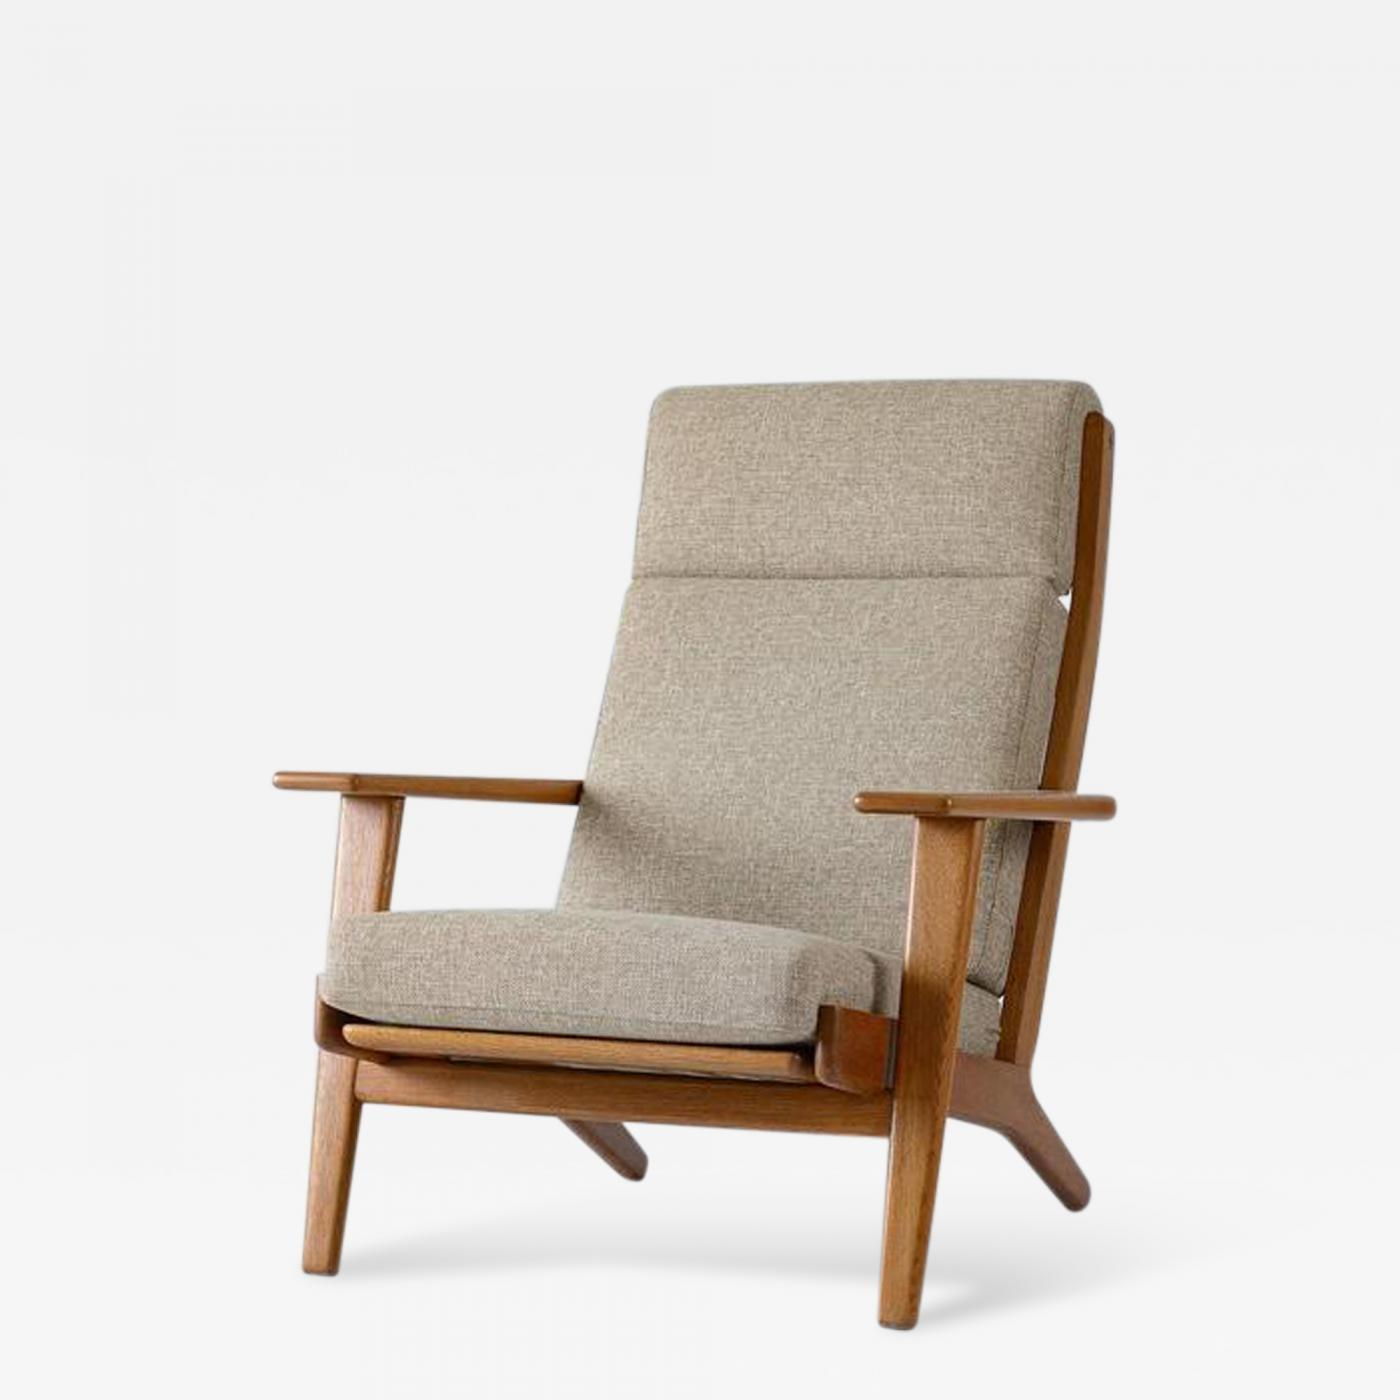 Hans Wegner Hans Wegner GE 290 High Back Lounge Chair